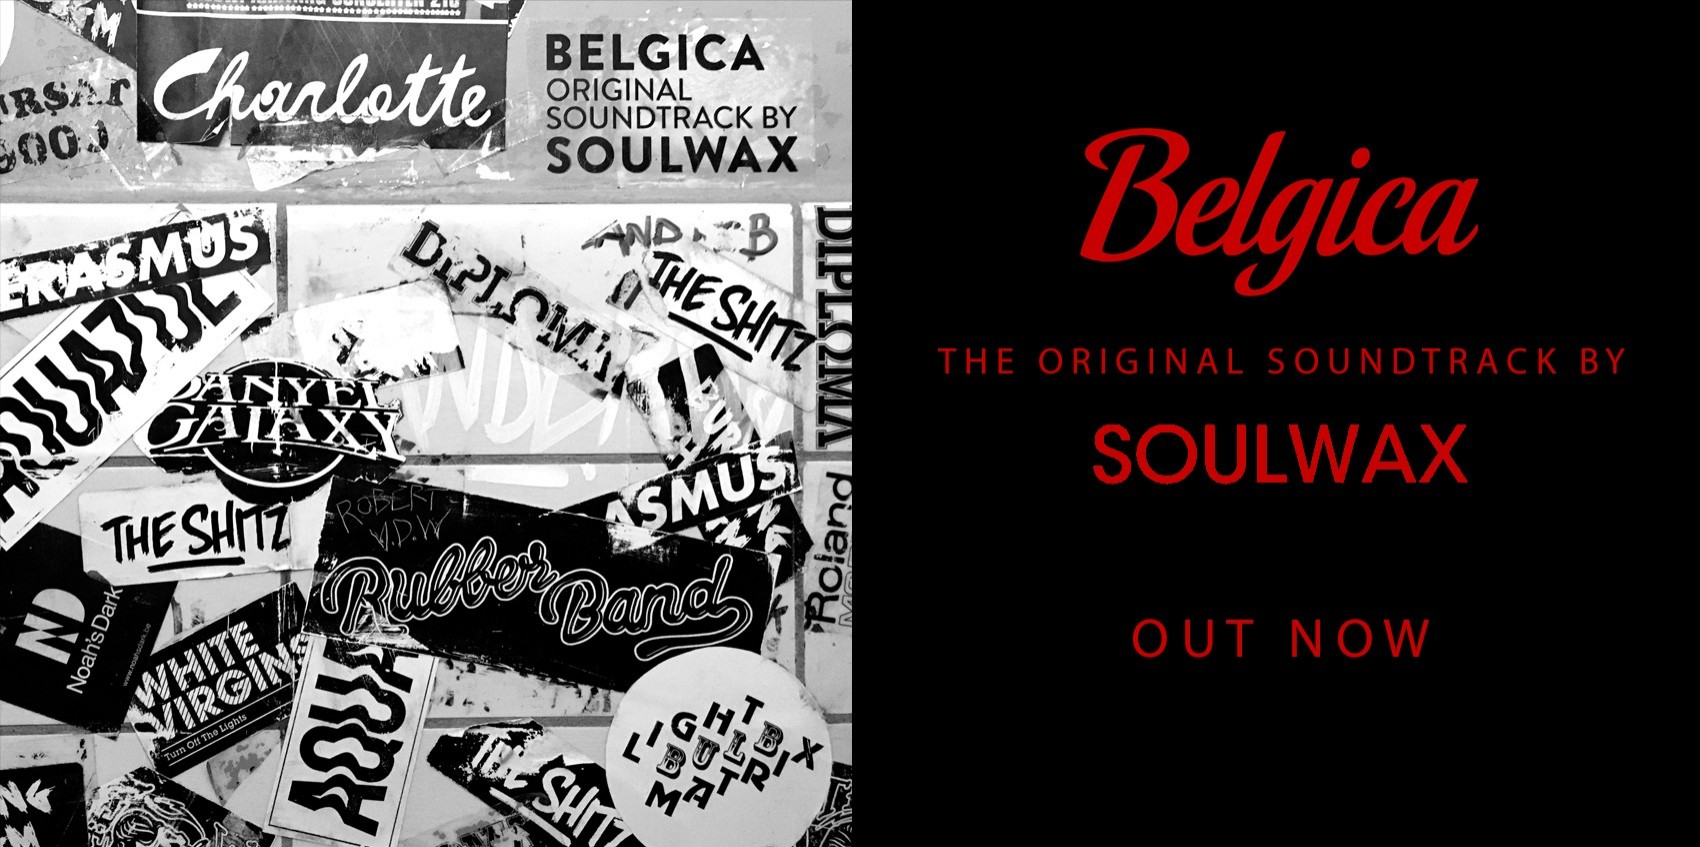 Soulwax \'Belgica OST\' OUT NOW